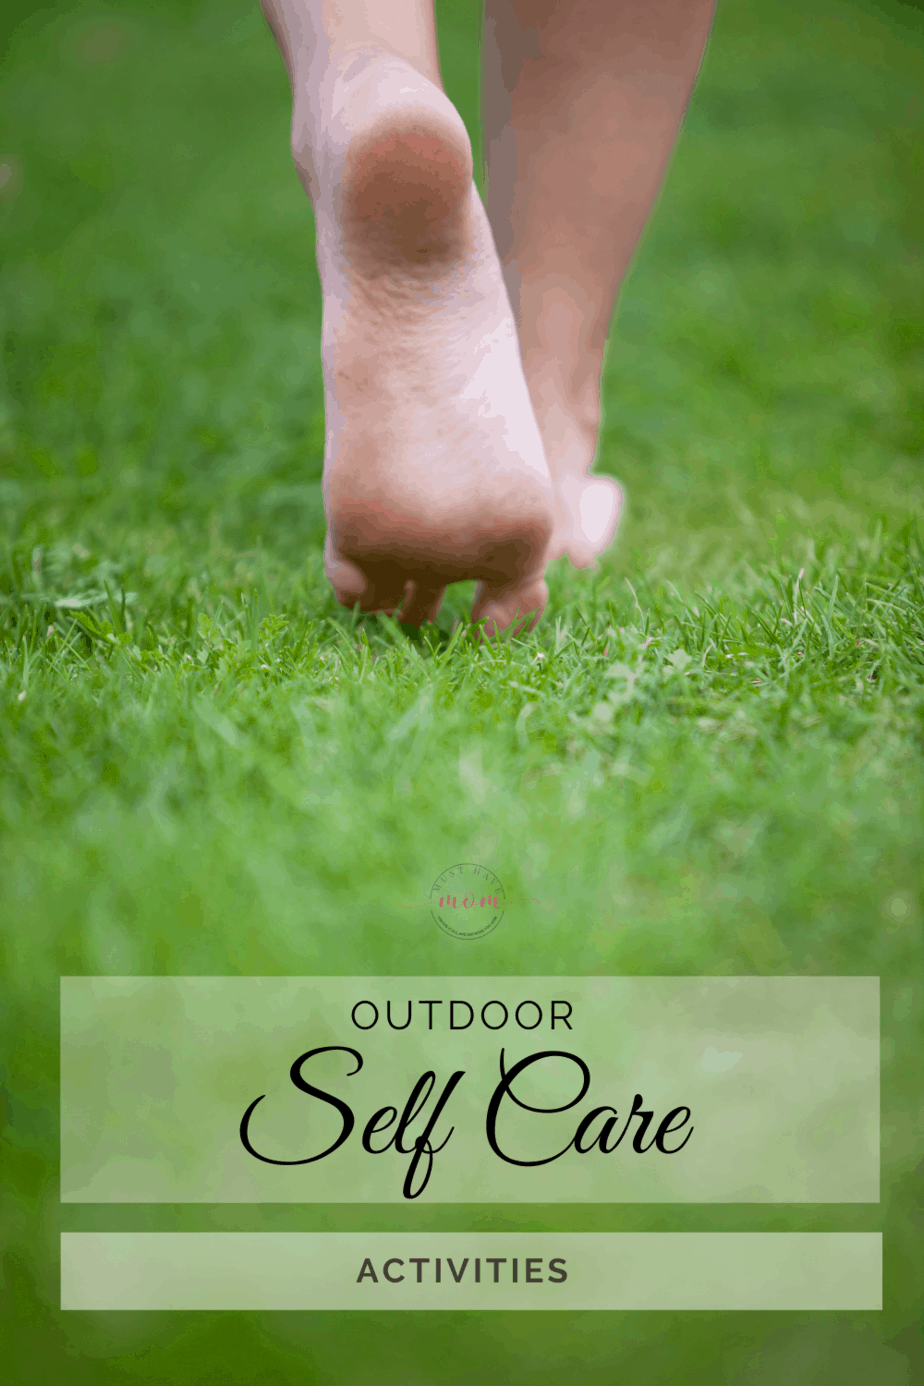 Outdoor Self Care Activities. Self care activities improve our immunity, increase positive thinking and make us less susceptible to other health issues.